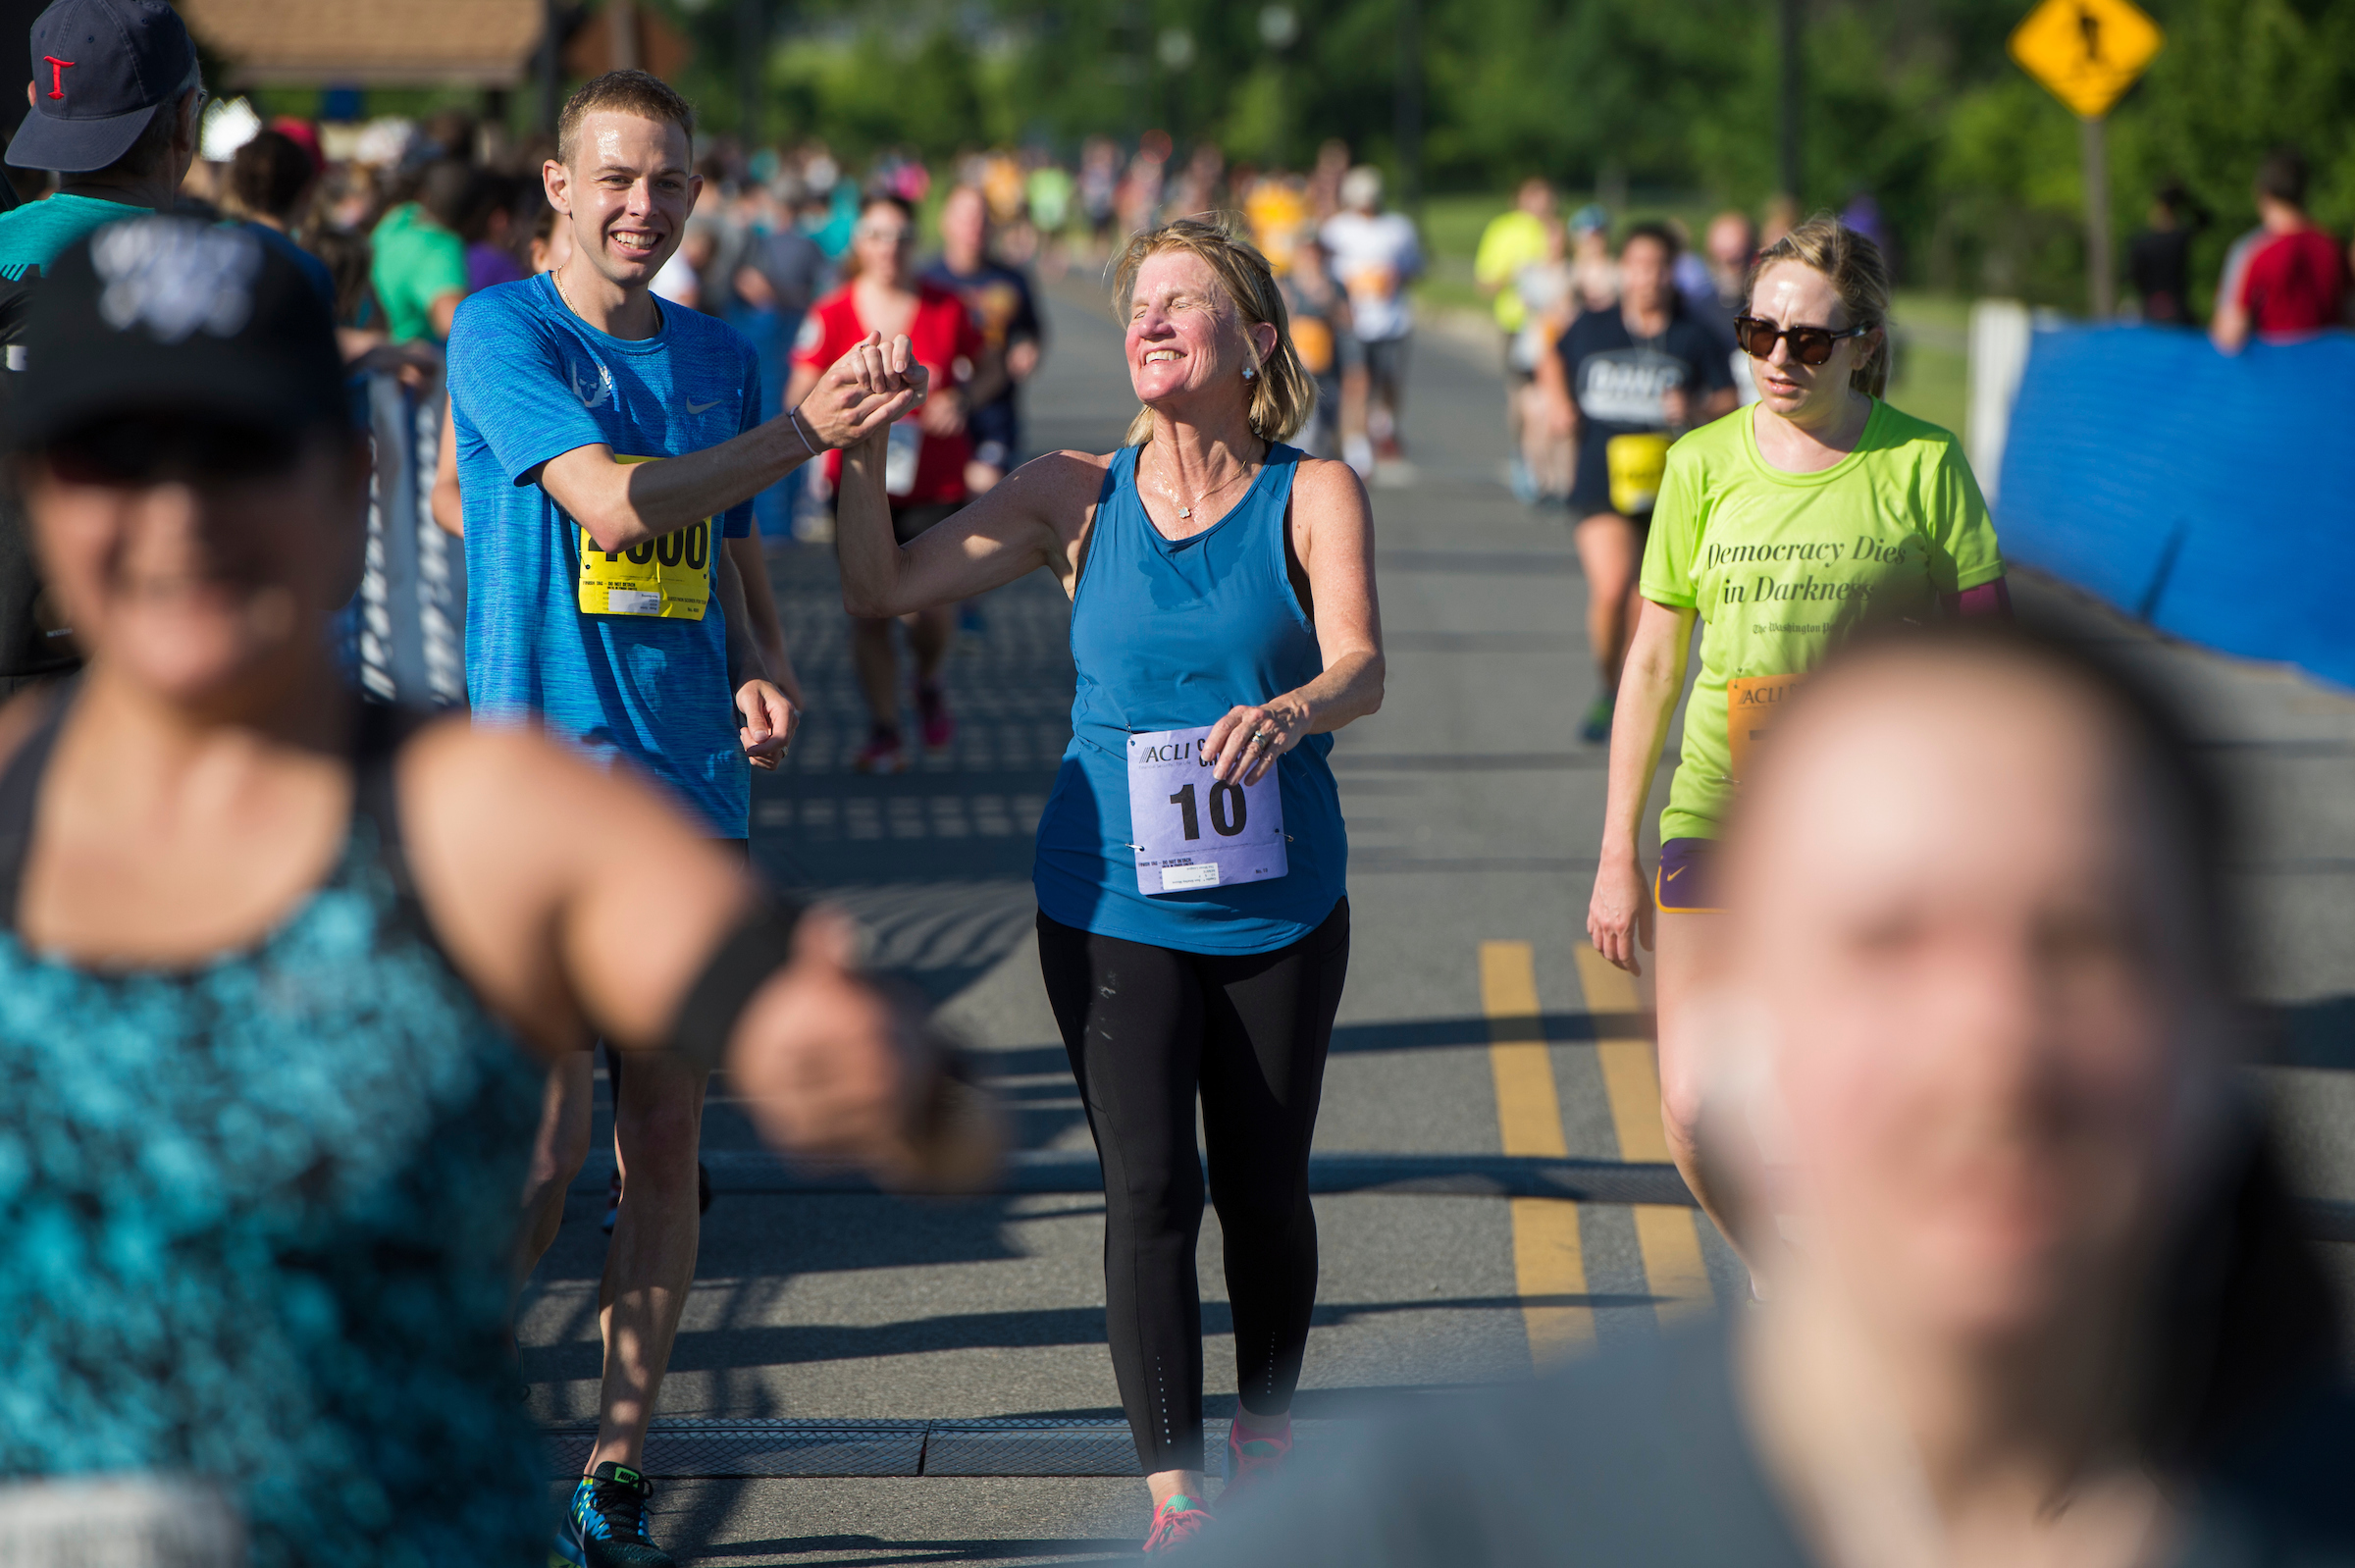 UNITED STATES - MAY 17: Sen. Shelley Moore Capito, R-W.Va., finishes the ACLI Capital Challenge 3 Mile Team Race in Anacostia Park, May 17, 2017. (Photo By Tom Williams/CQ Roll Call)